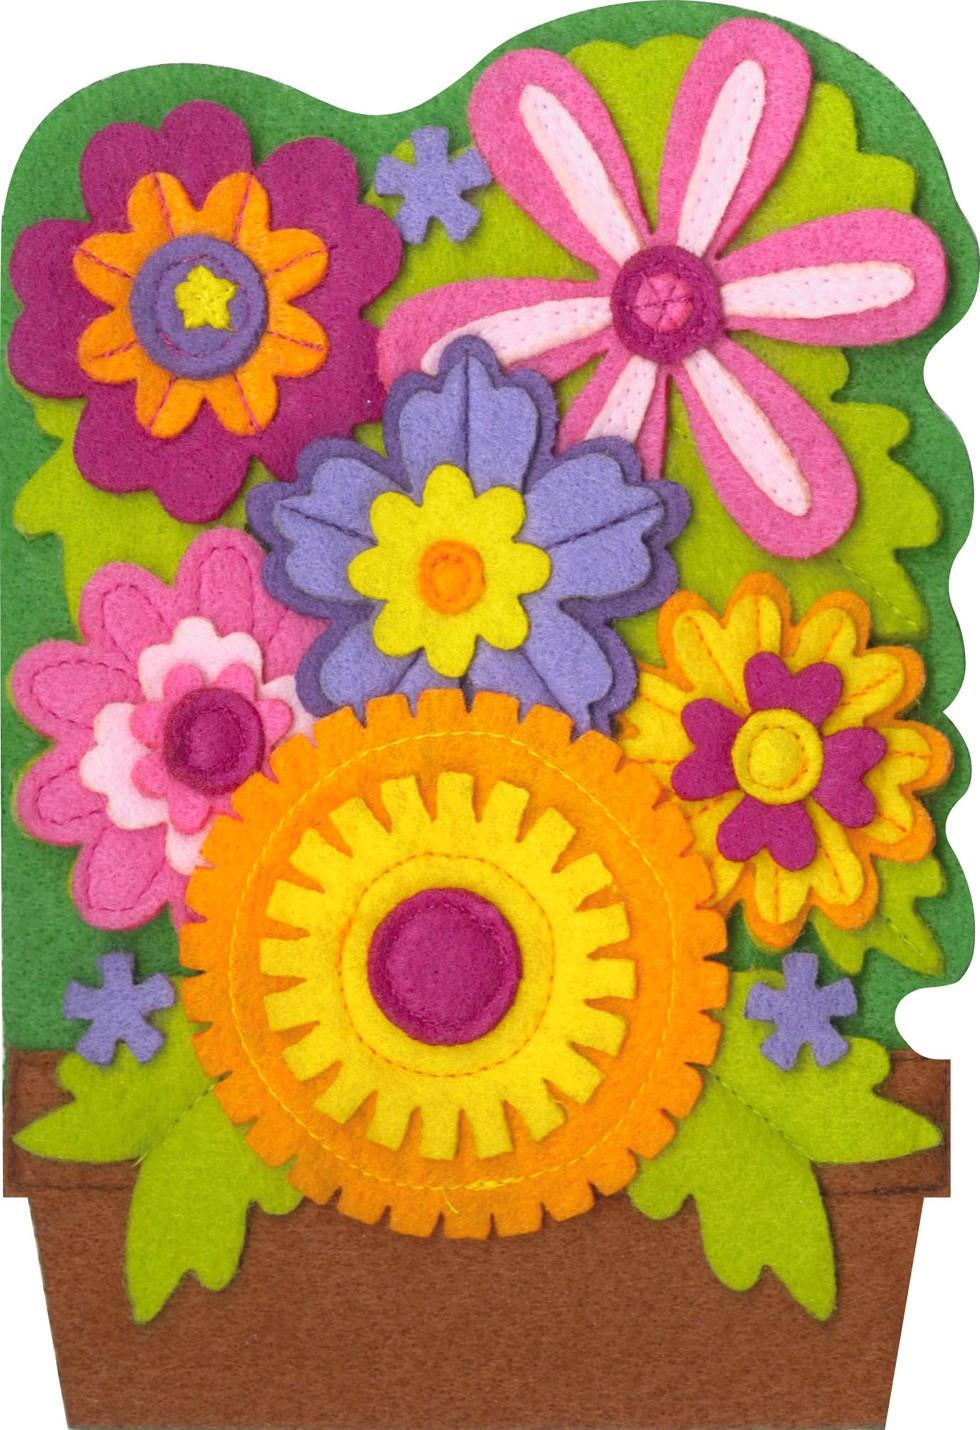 Flower pot felt musical birthday card greeting cards Hallmark flowers